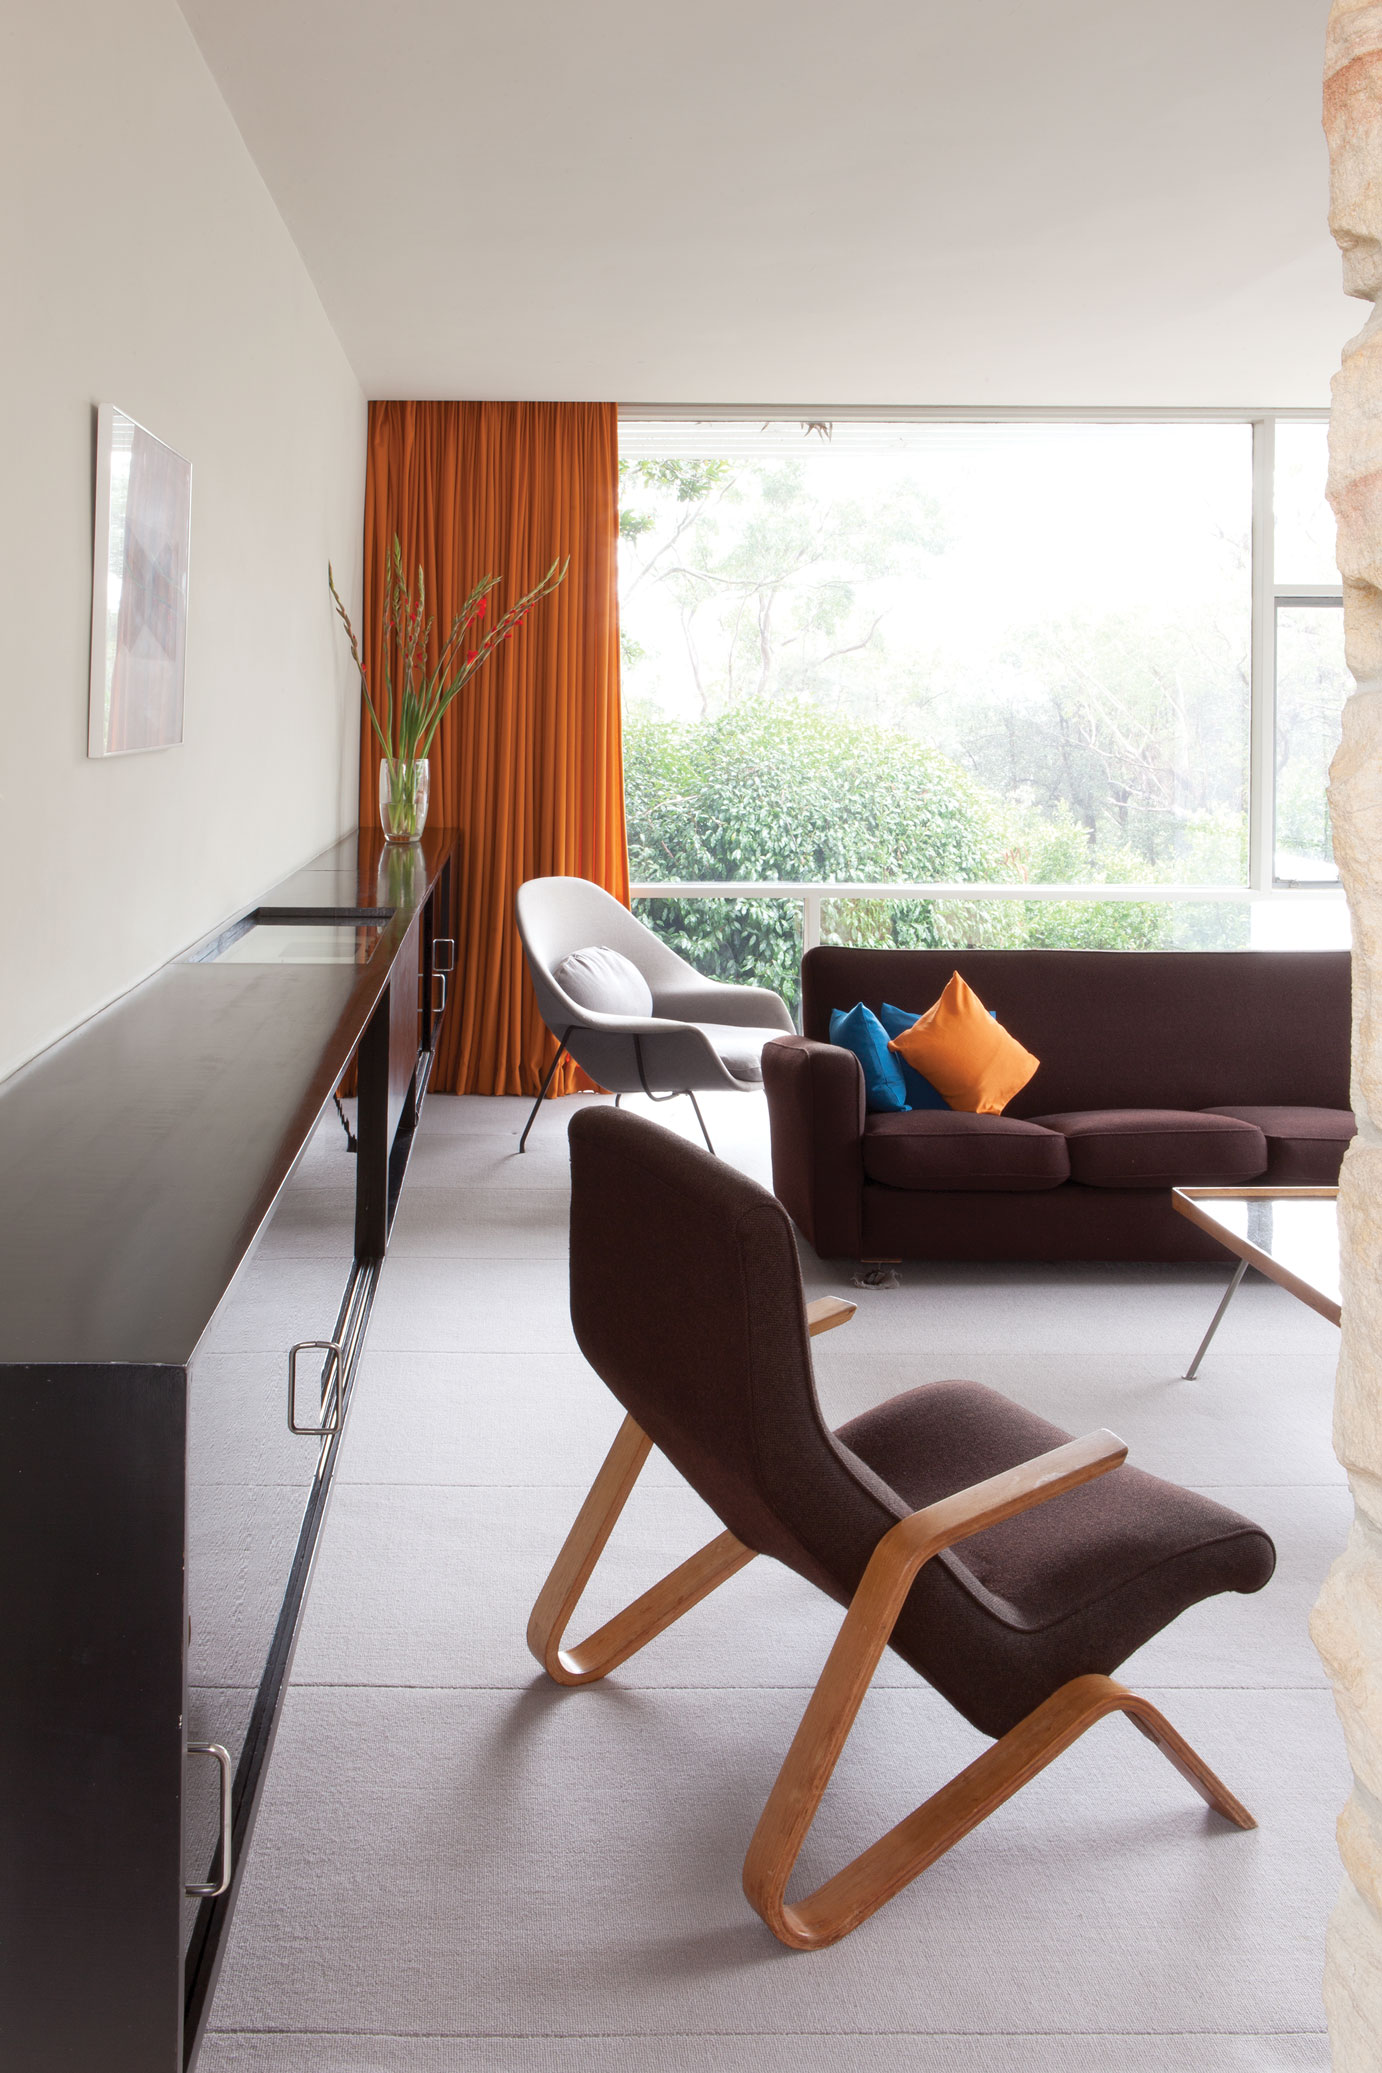 Living room, Rose Seidler House, Maecell Seidler, 1950. Sydney Living Museums.  The grasshopper chair (foreground) and womb chair (background) were both designed by Eero Saarinen, manufactured by Knoll International and purchased by Harry Seidler in New York.